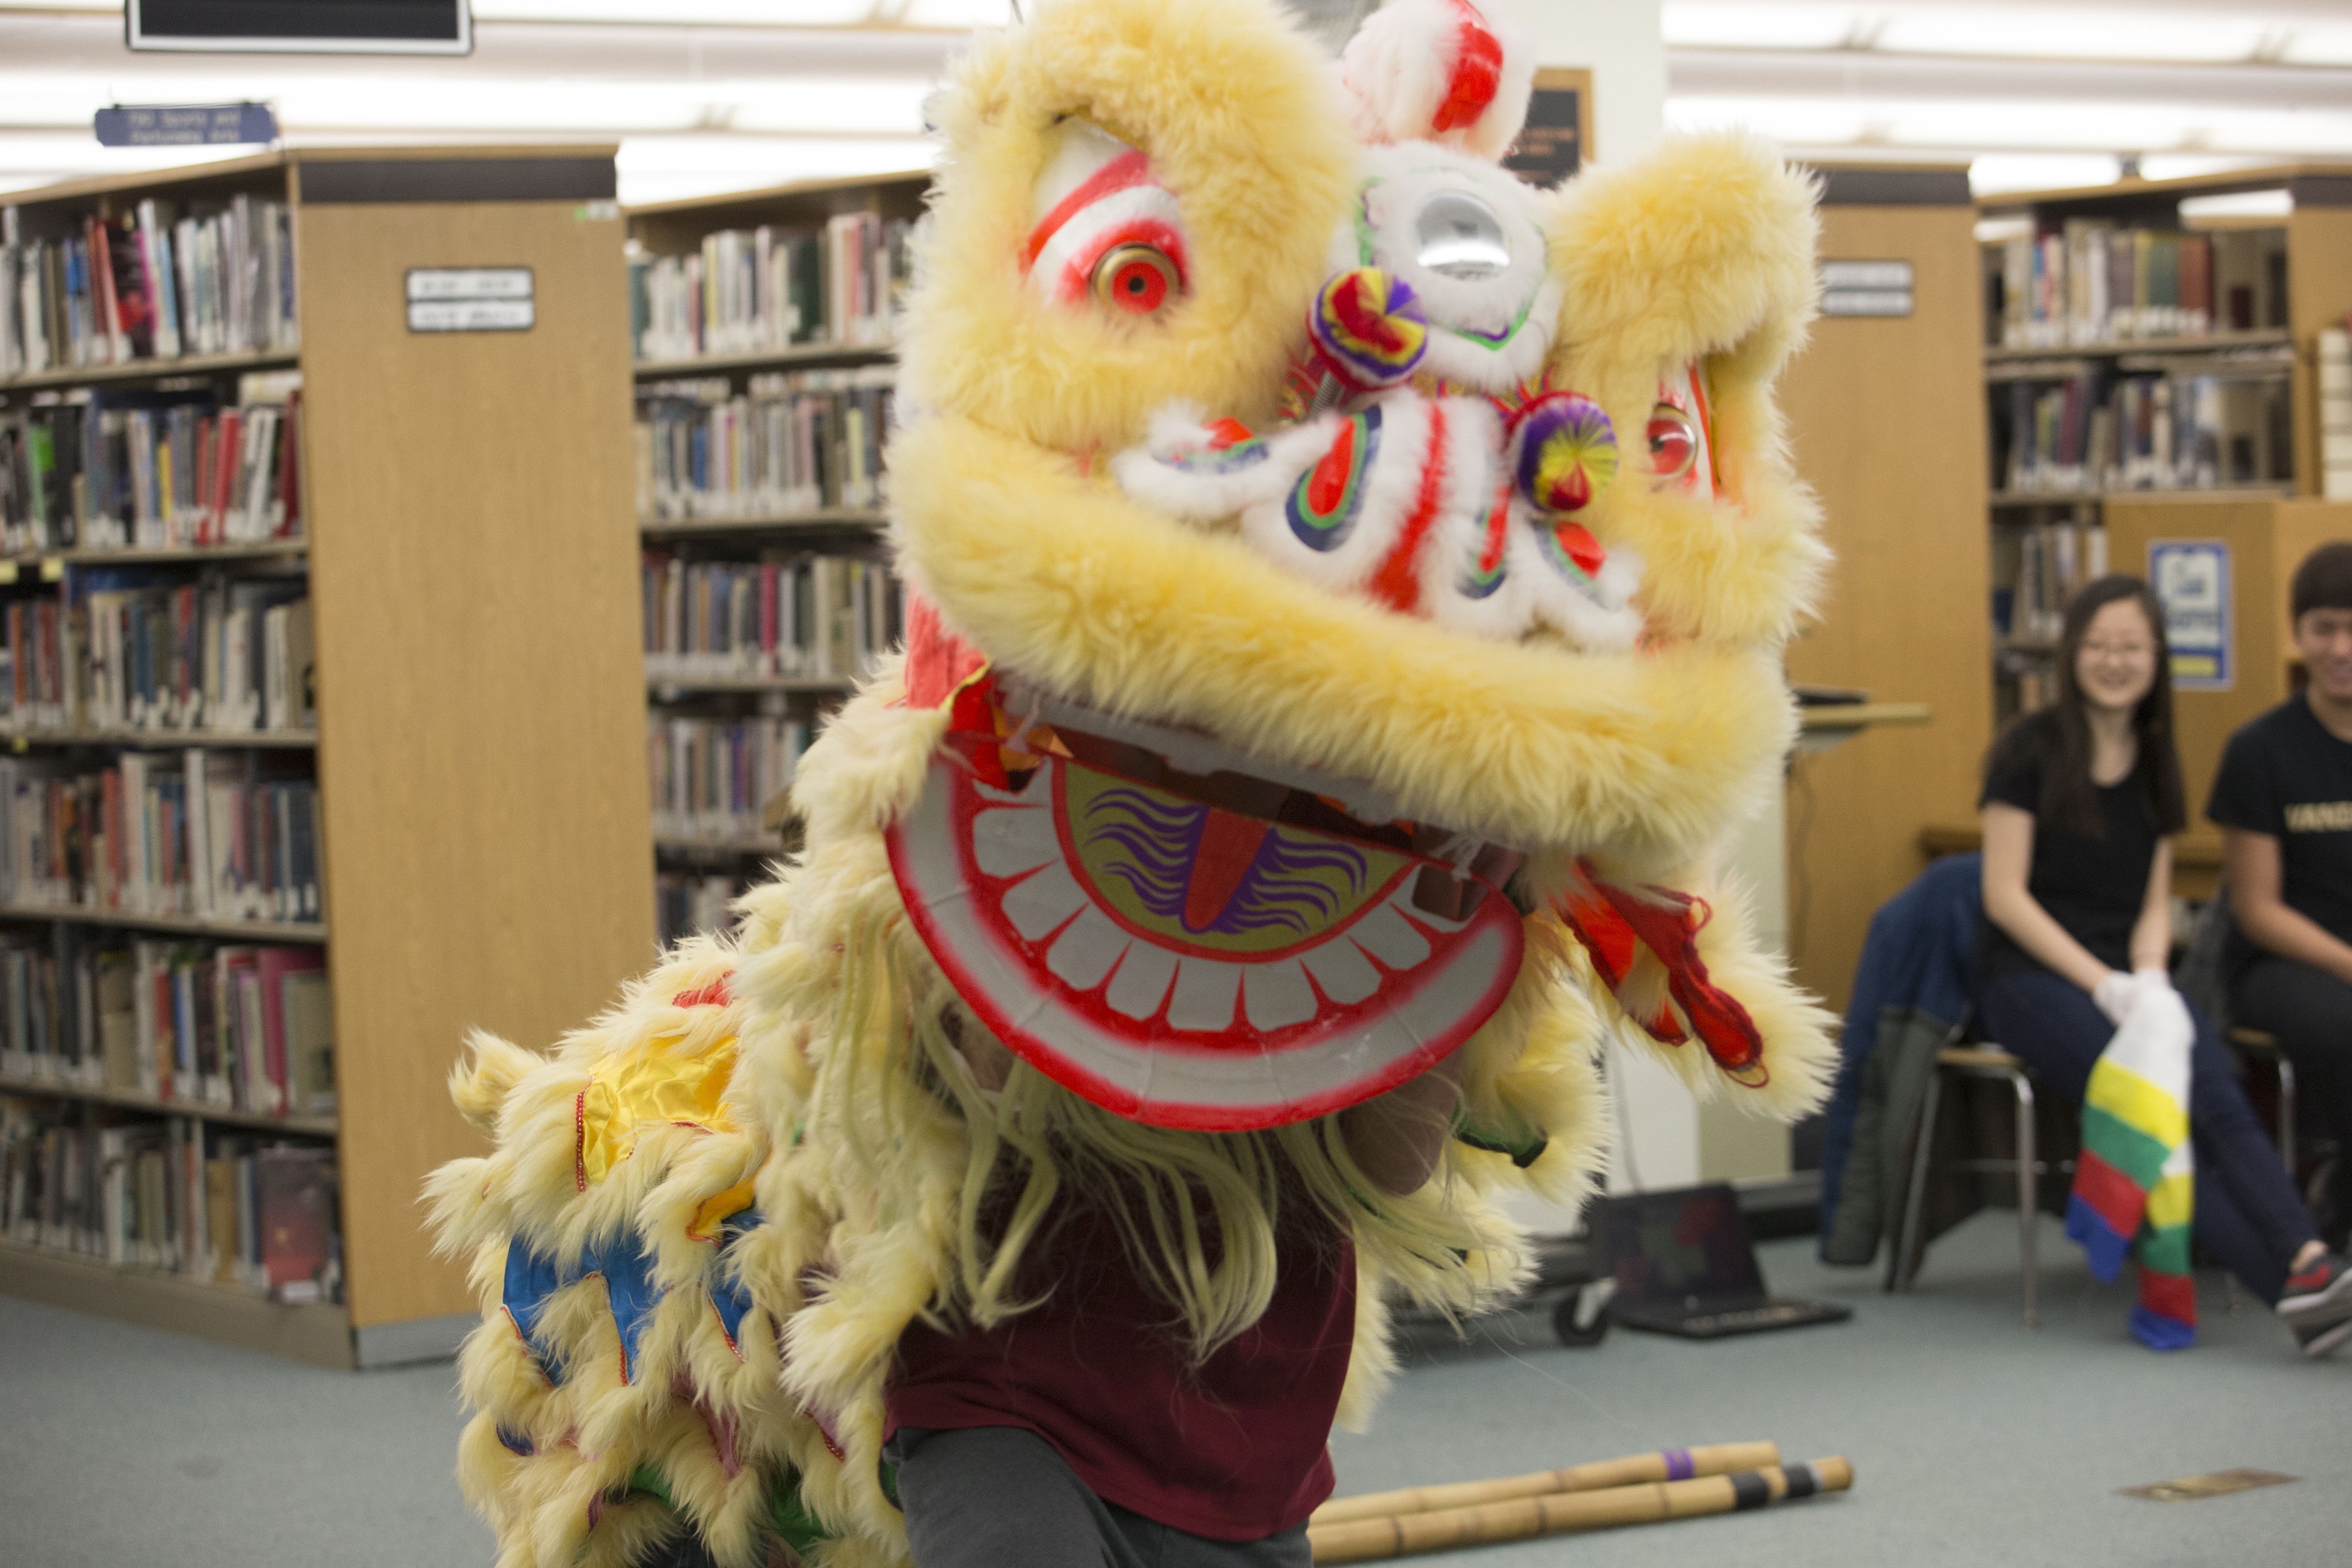 Connie Jamesjenkin, Imsa Irc Development Collection And Reference Librarian,  Wrote The Following Recap Of The Lunar New Year Readin, Which Was Held